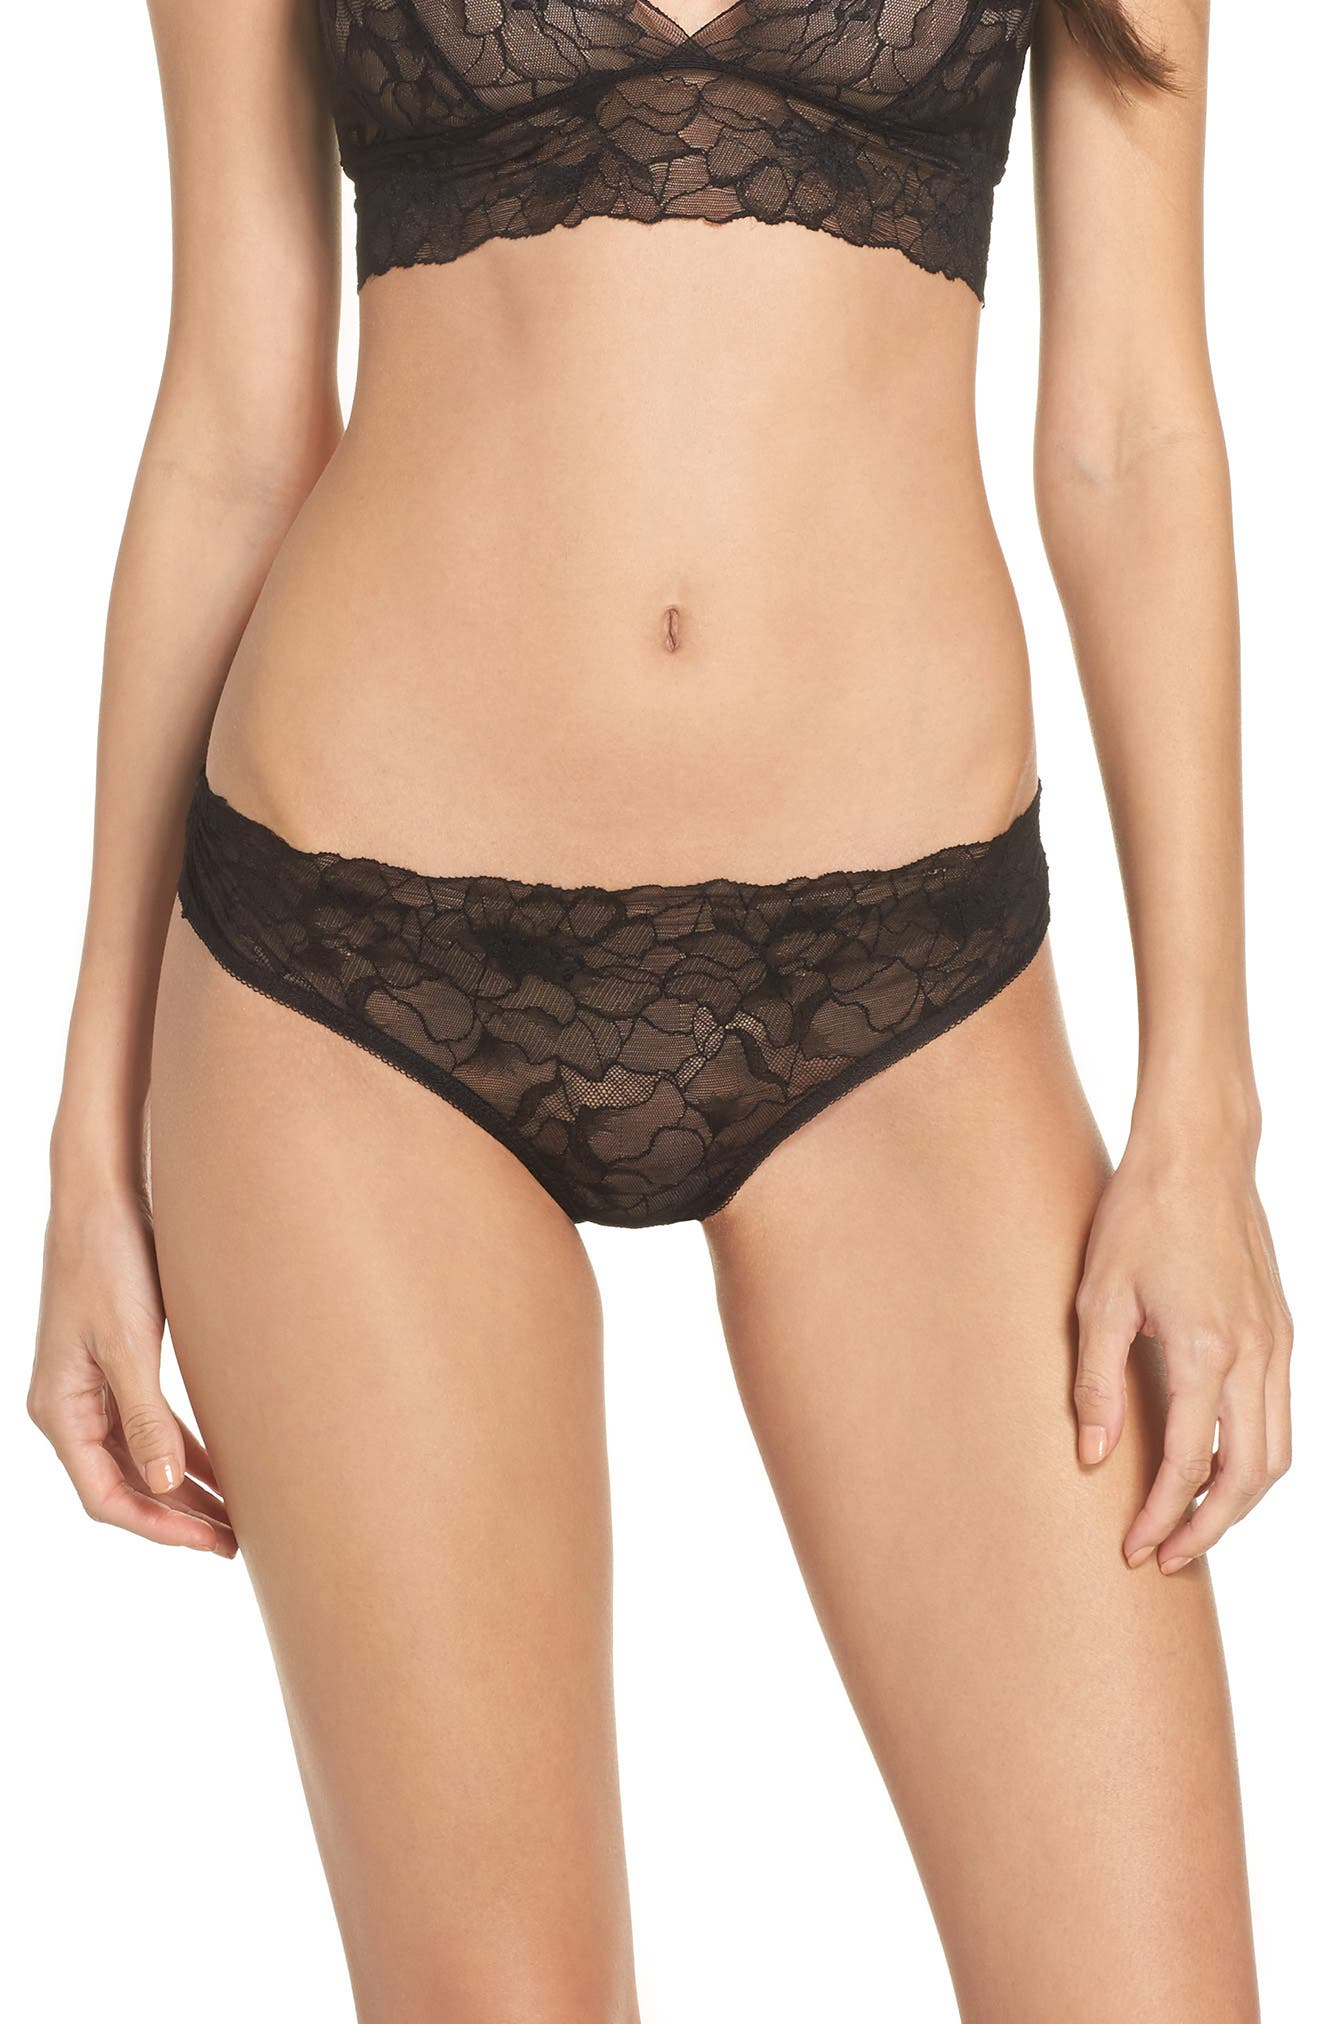 All Lace Glamour Lace Thong,                         Main,                         color, BLACK